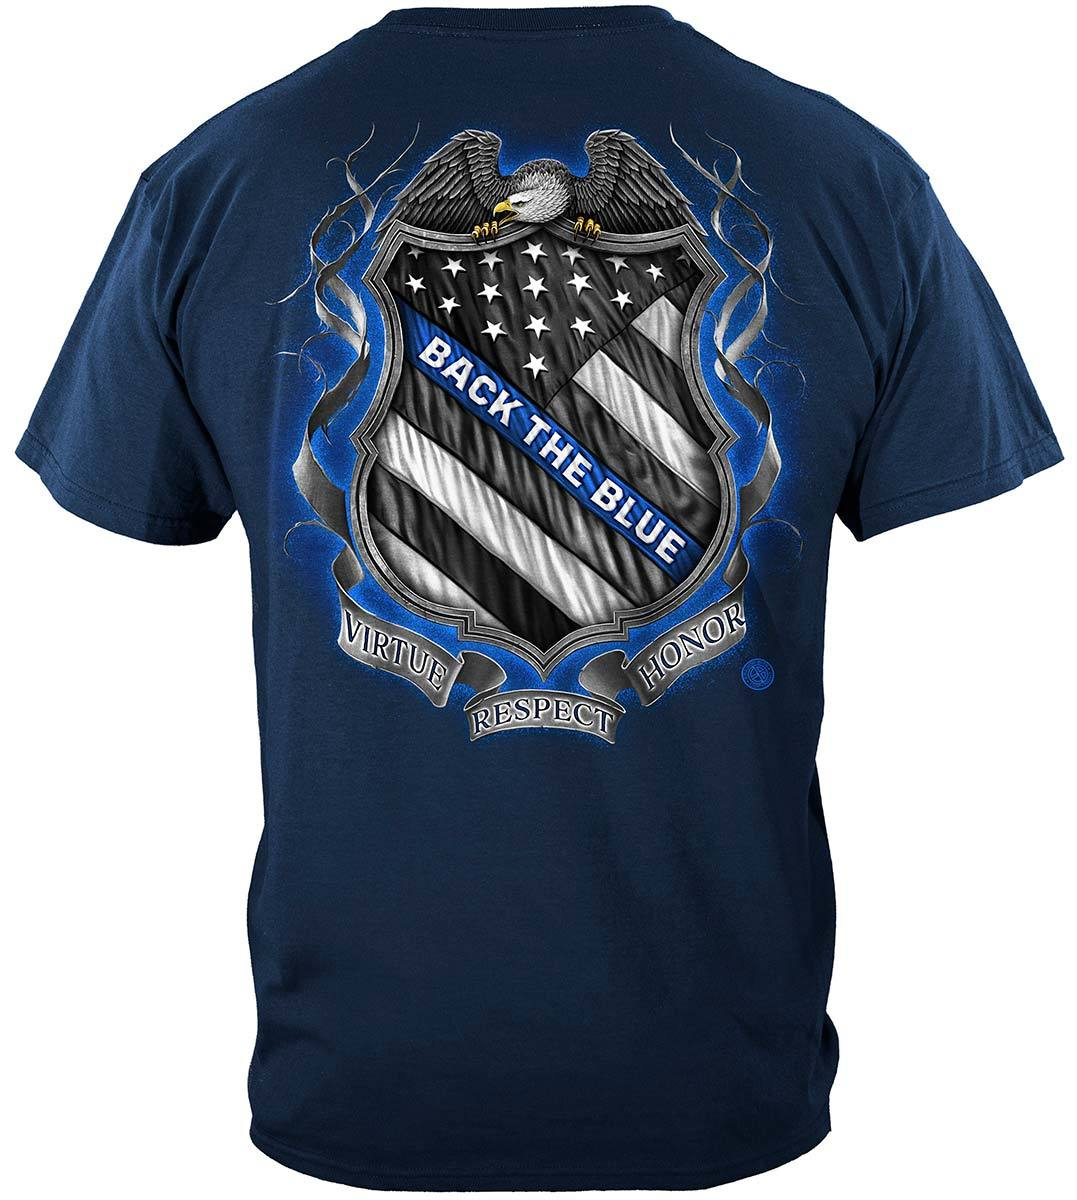 Law enforcement Back the Blue Virtue Respect Honor Premium T-Shirt